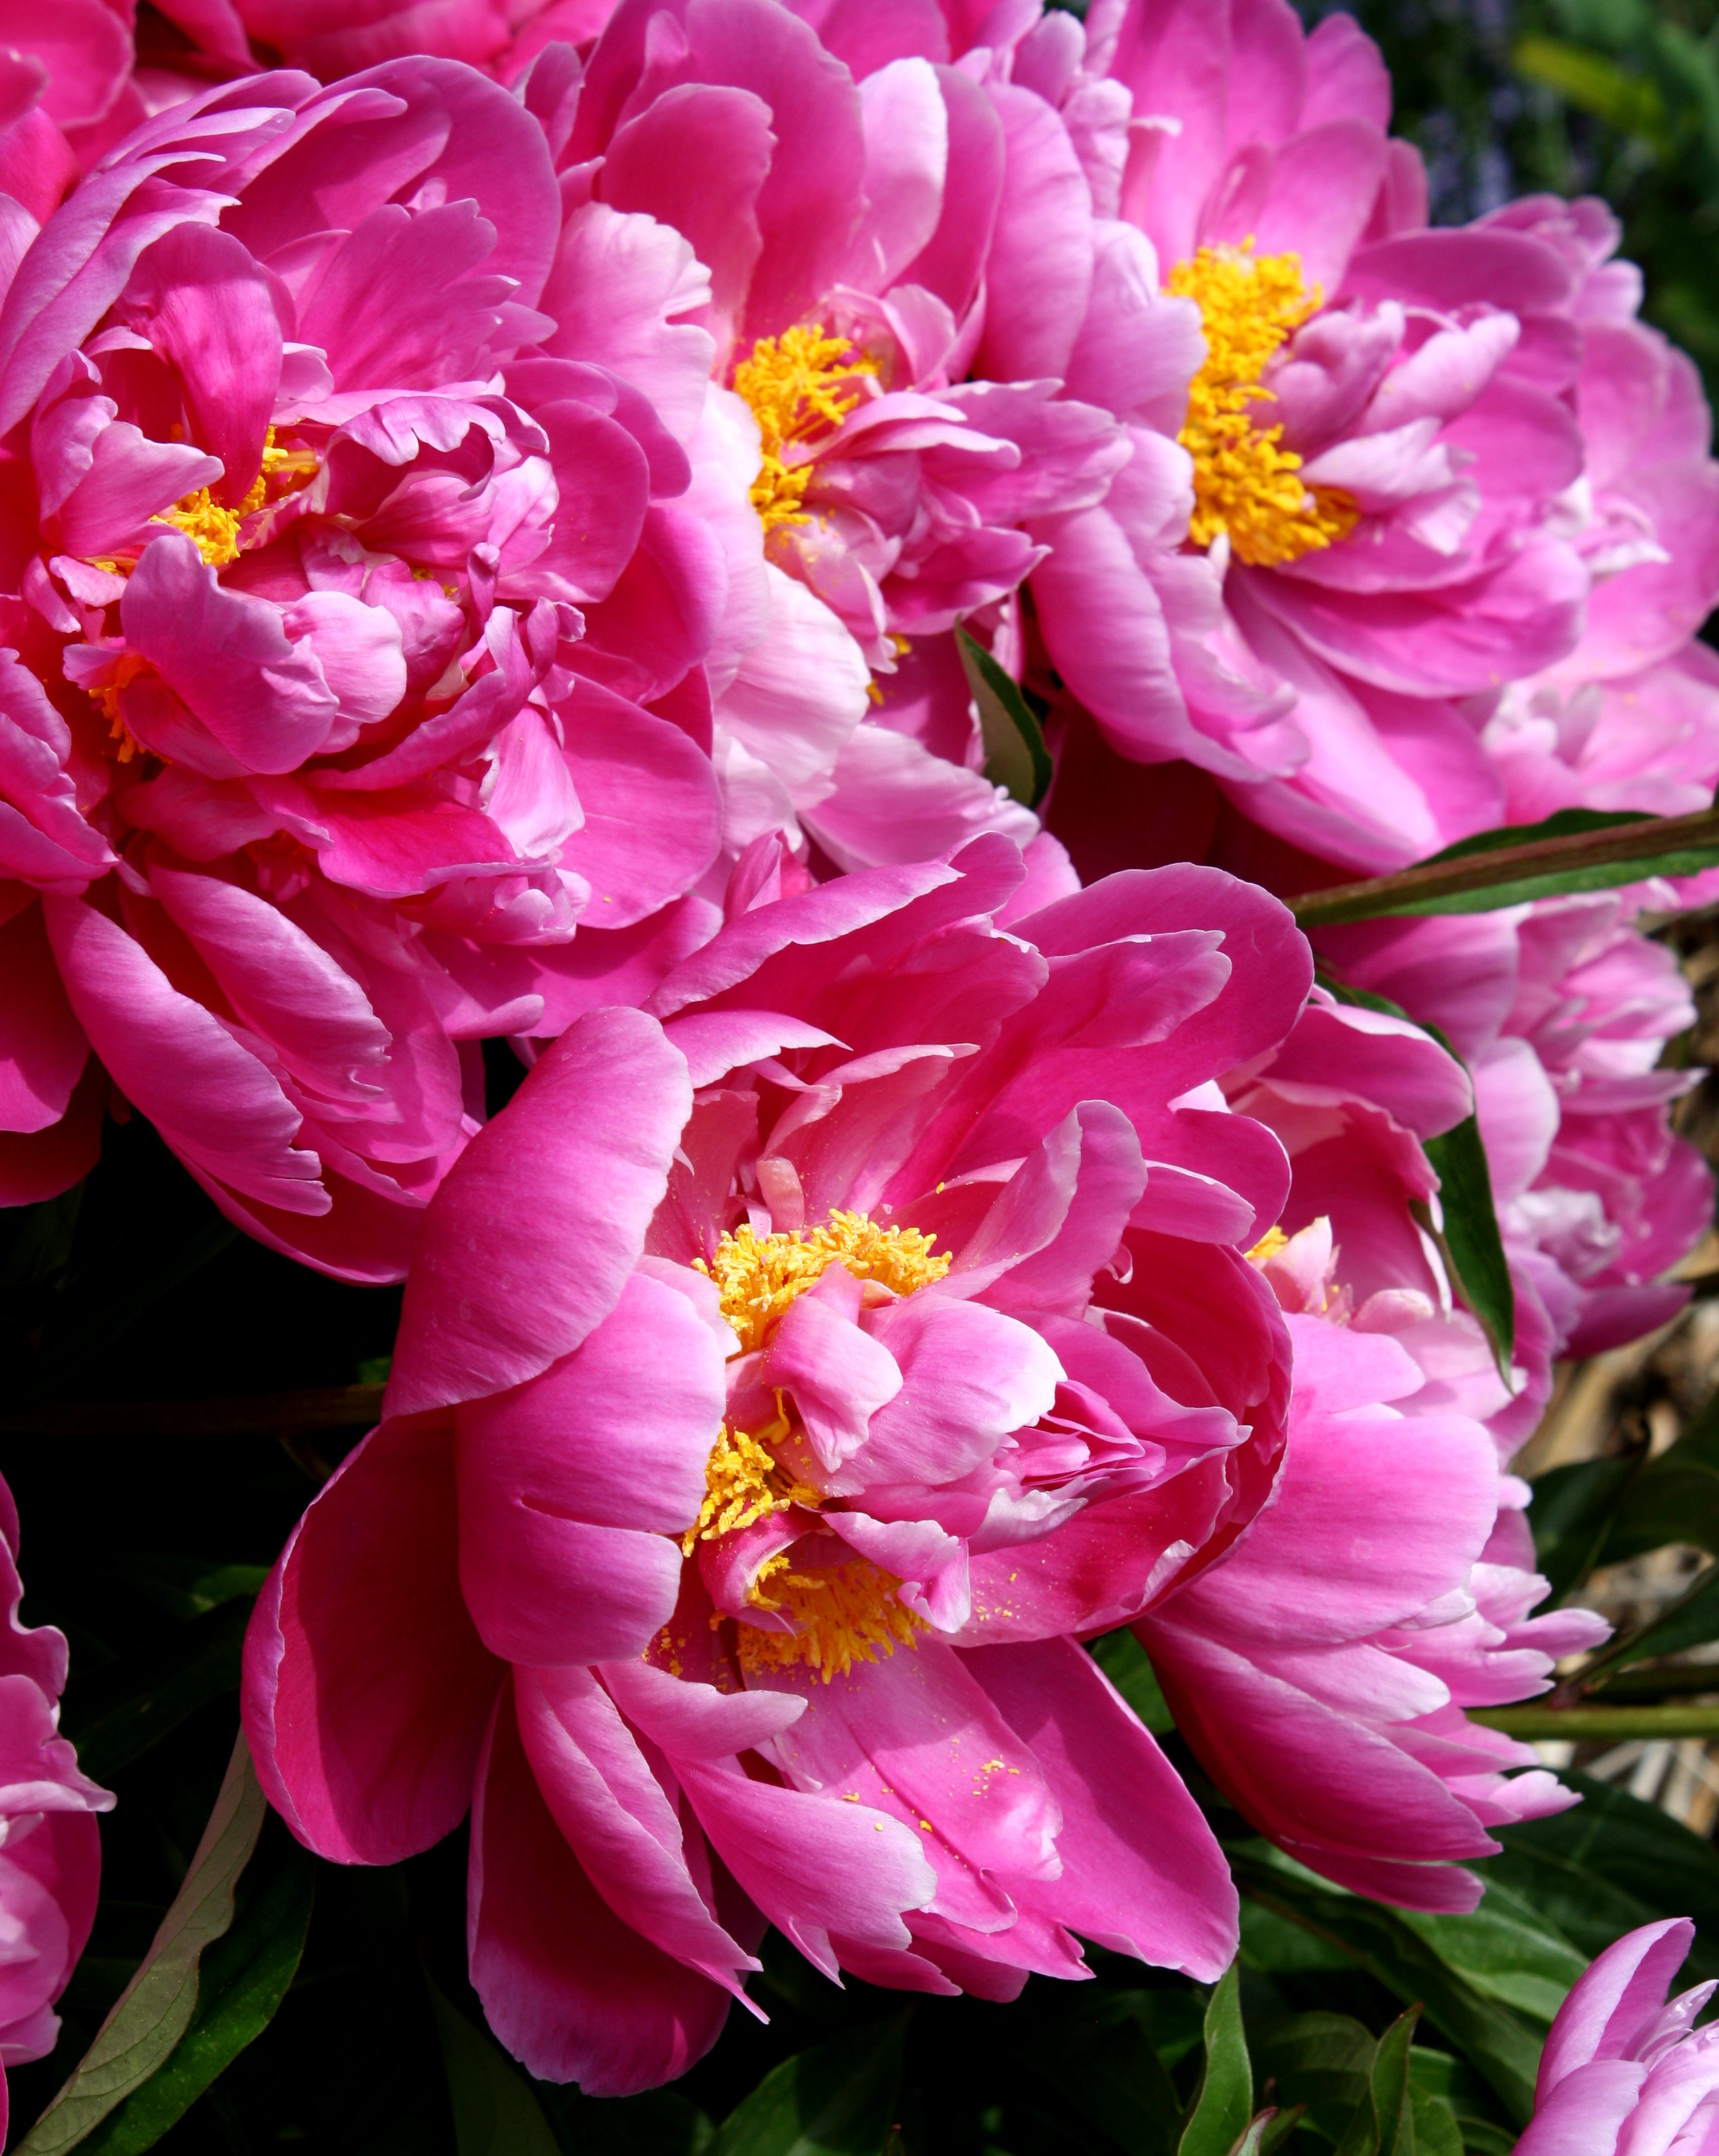 Flowers pictures free photographs photos public domain part 6 pink peonies mightylinksfo Choice Image